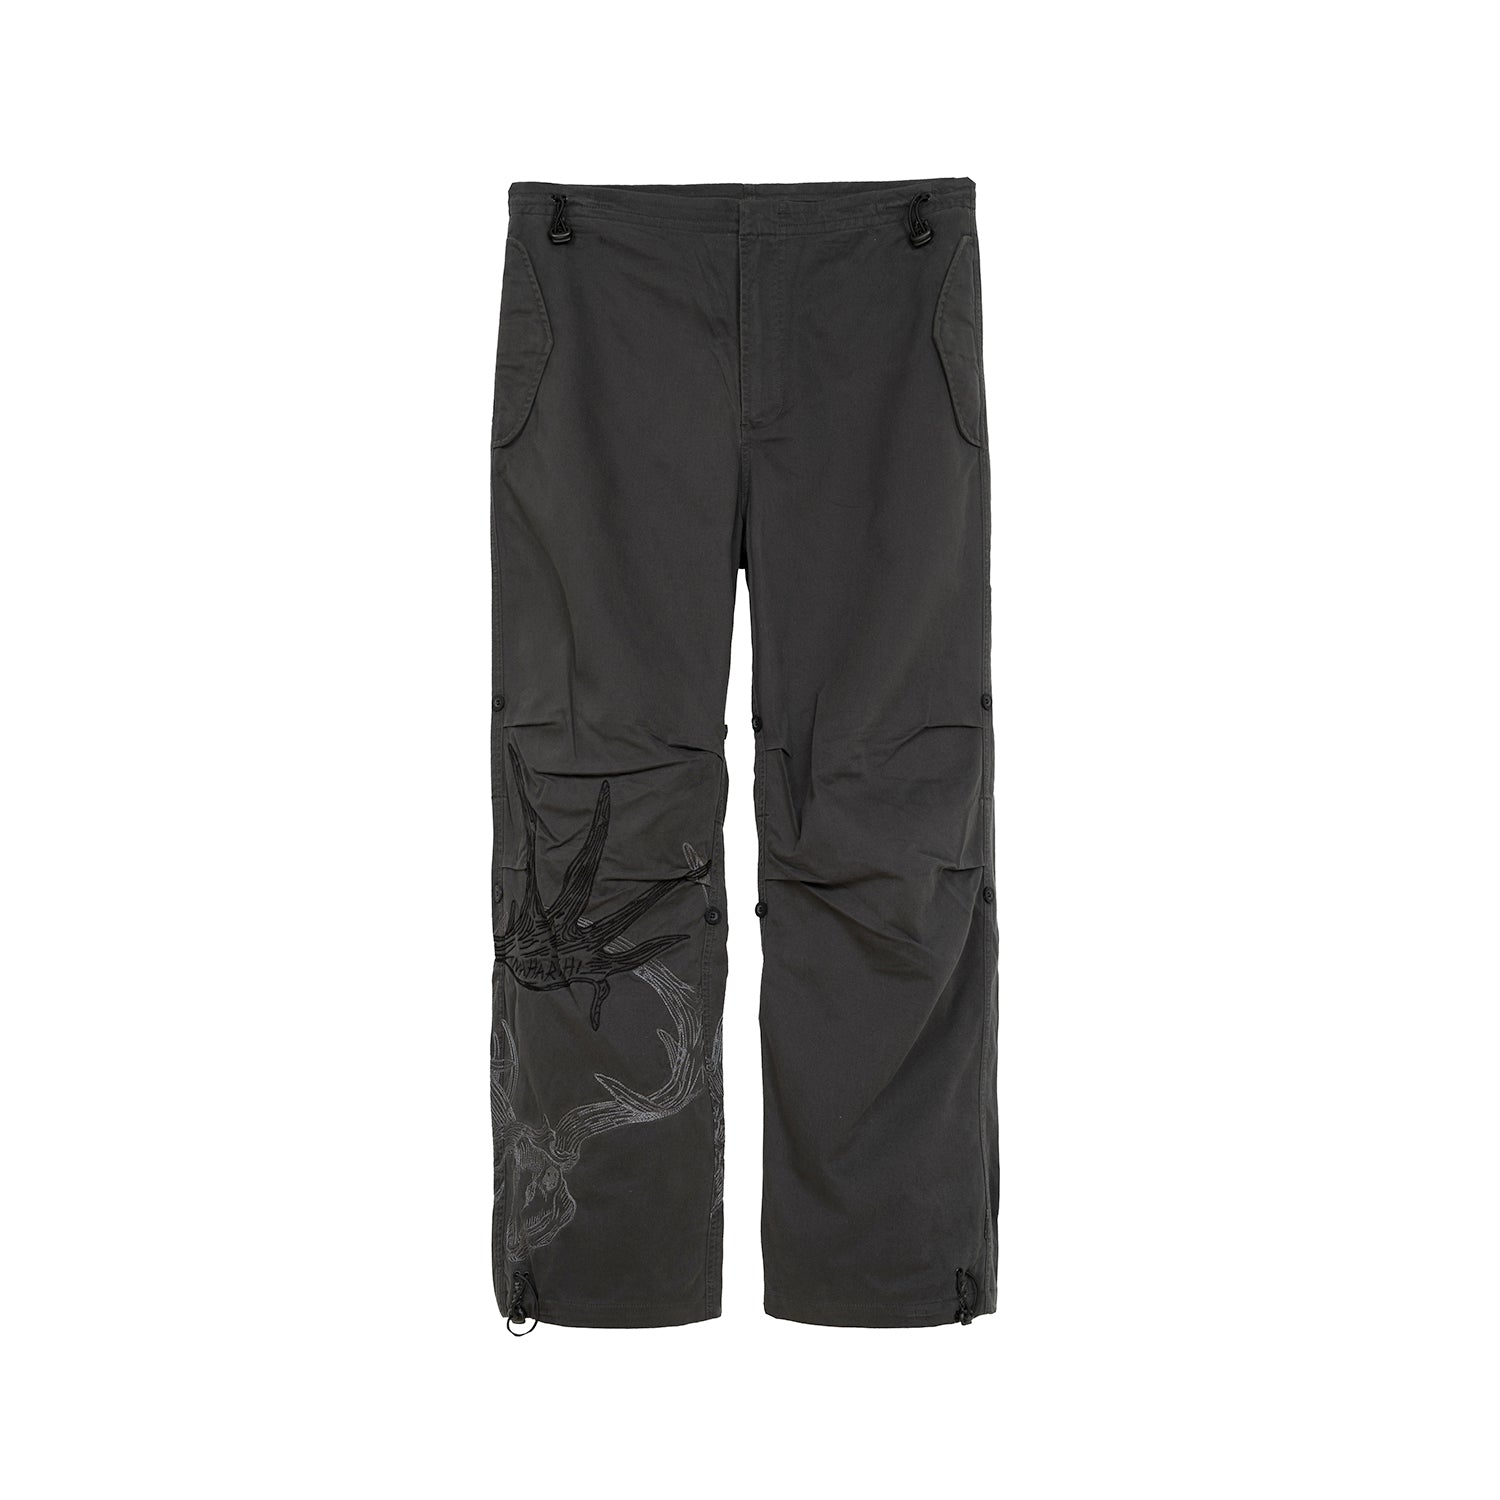 Maharishi Original Snopants Charcoal The Hunted Embroidery